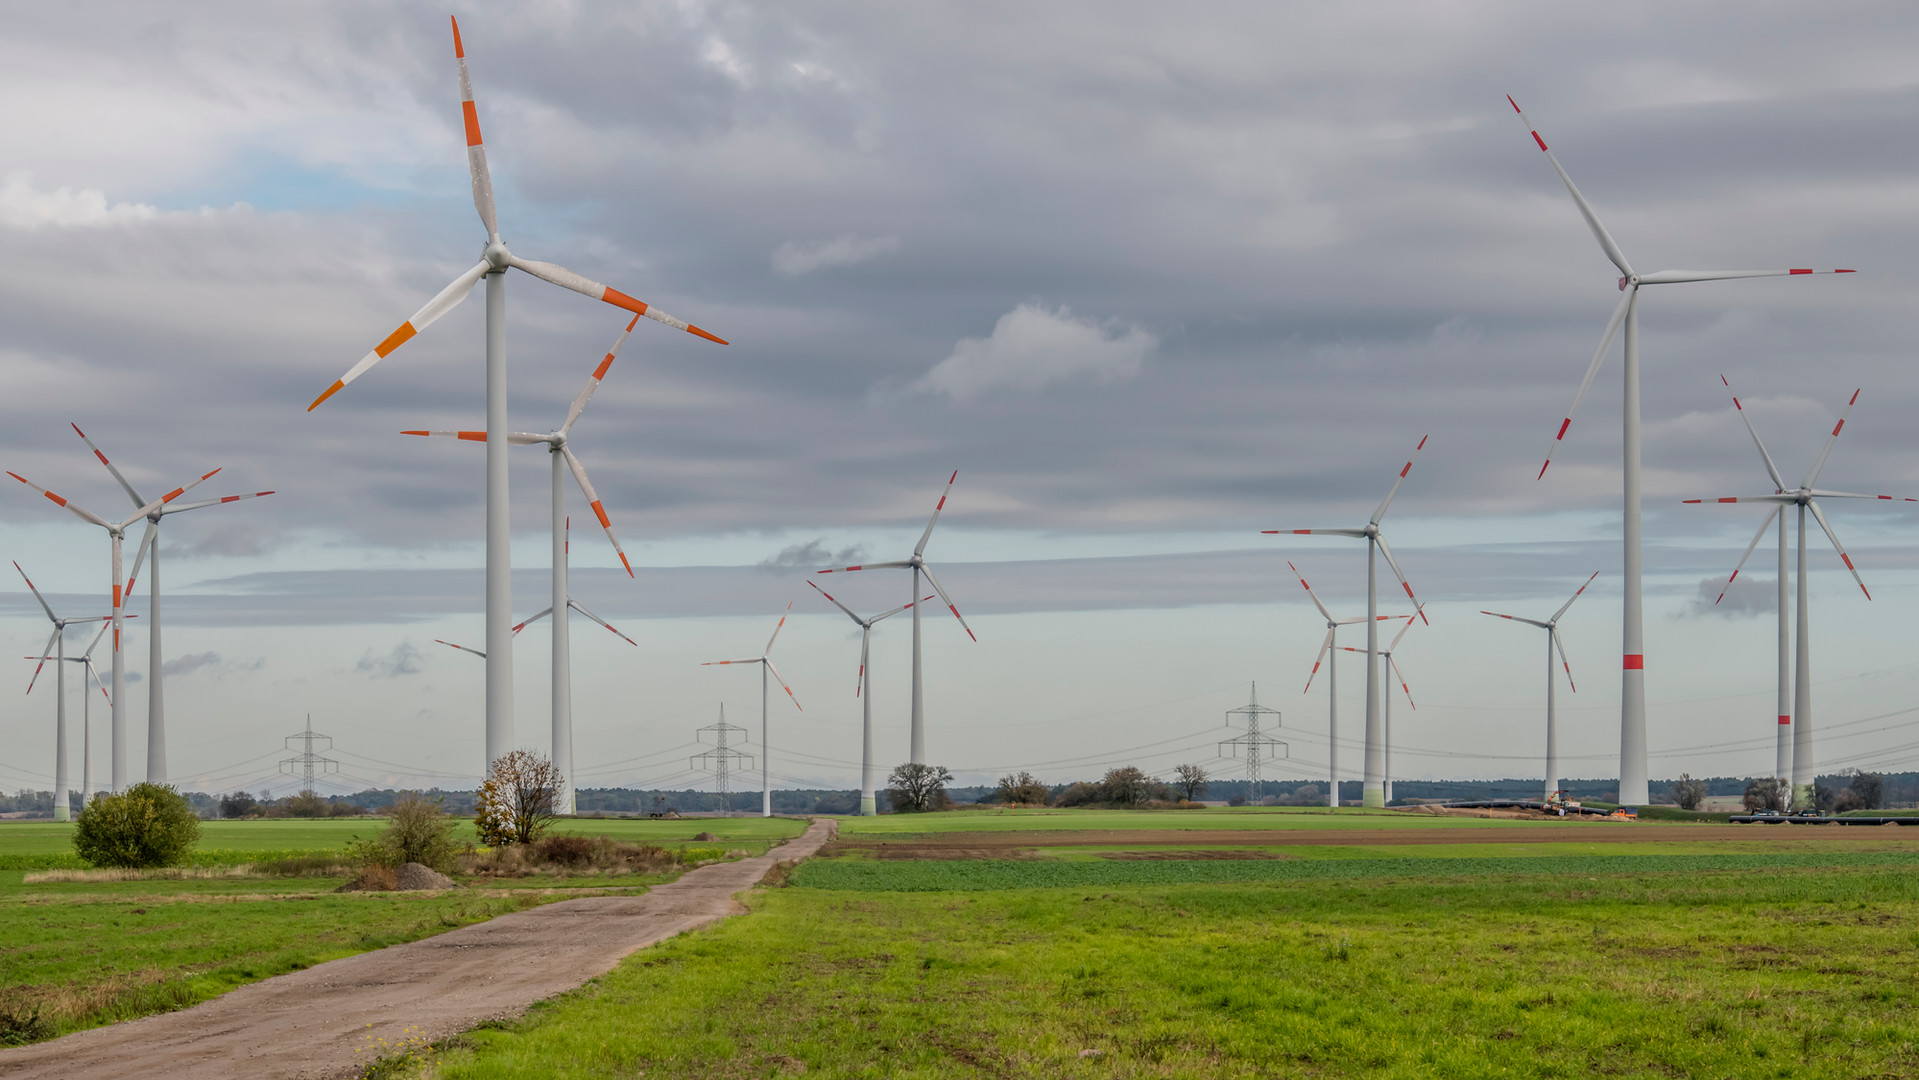 Rehfelde_Photovoltaik_Windpark_Druck_03.